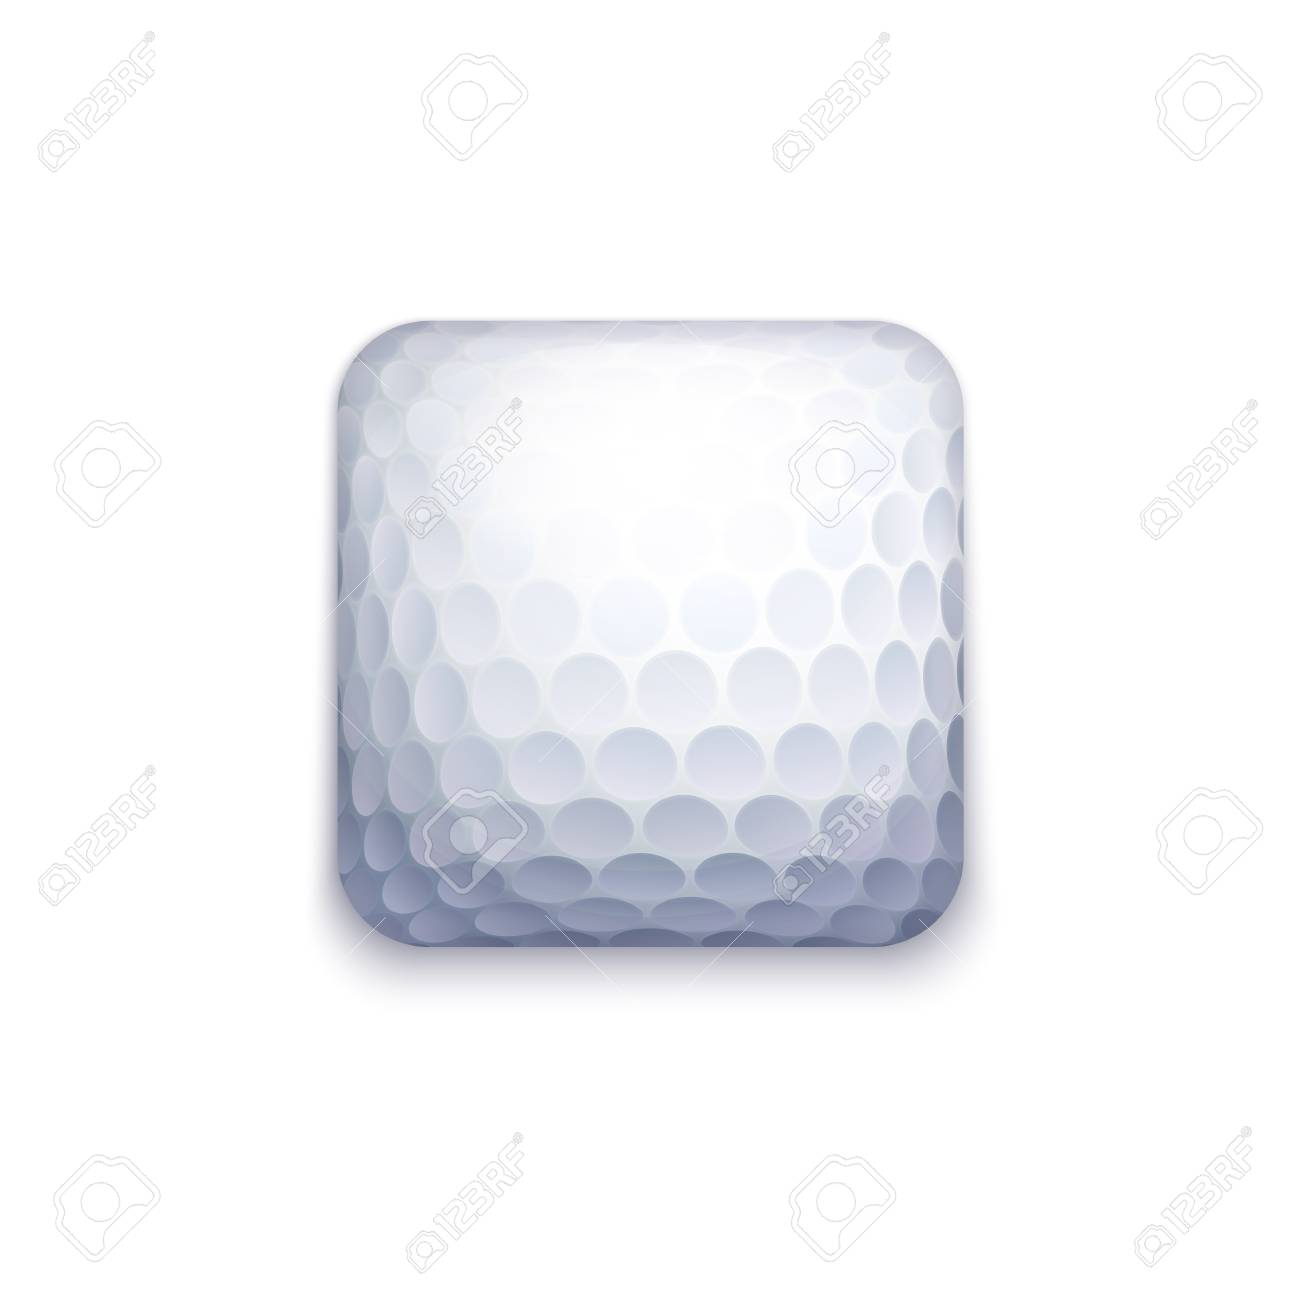 Vector Golf Ball Icon For Applications, Ui, GUI and Game Interfaces - 79634511